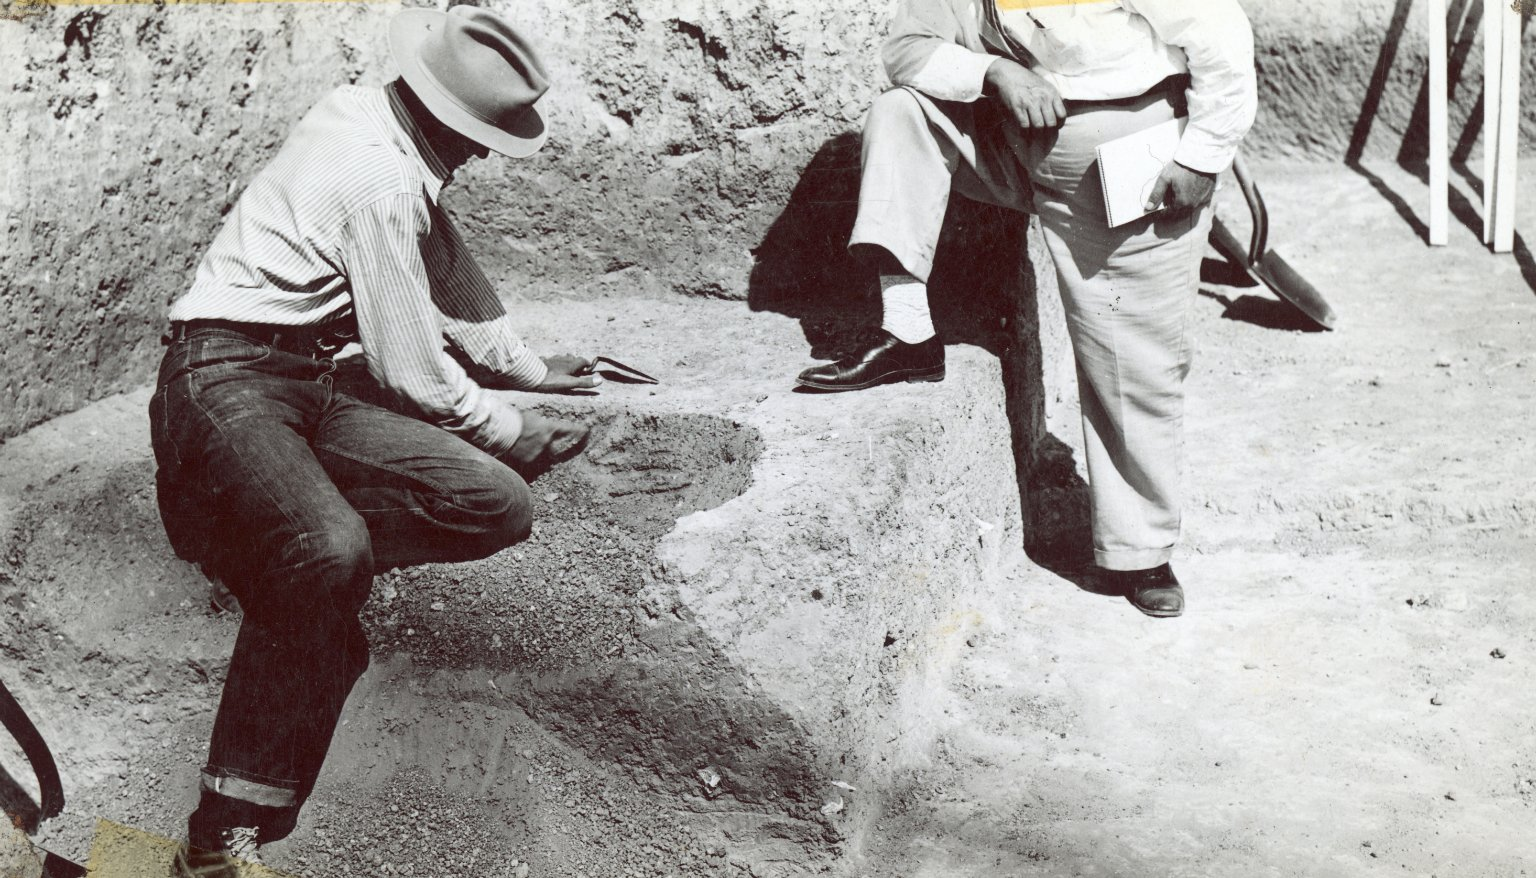 Charles Scoggin and visitor to Lindenmeier site